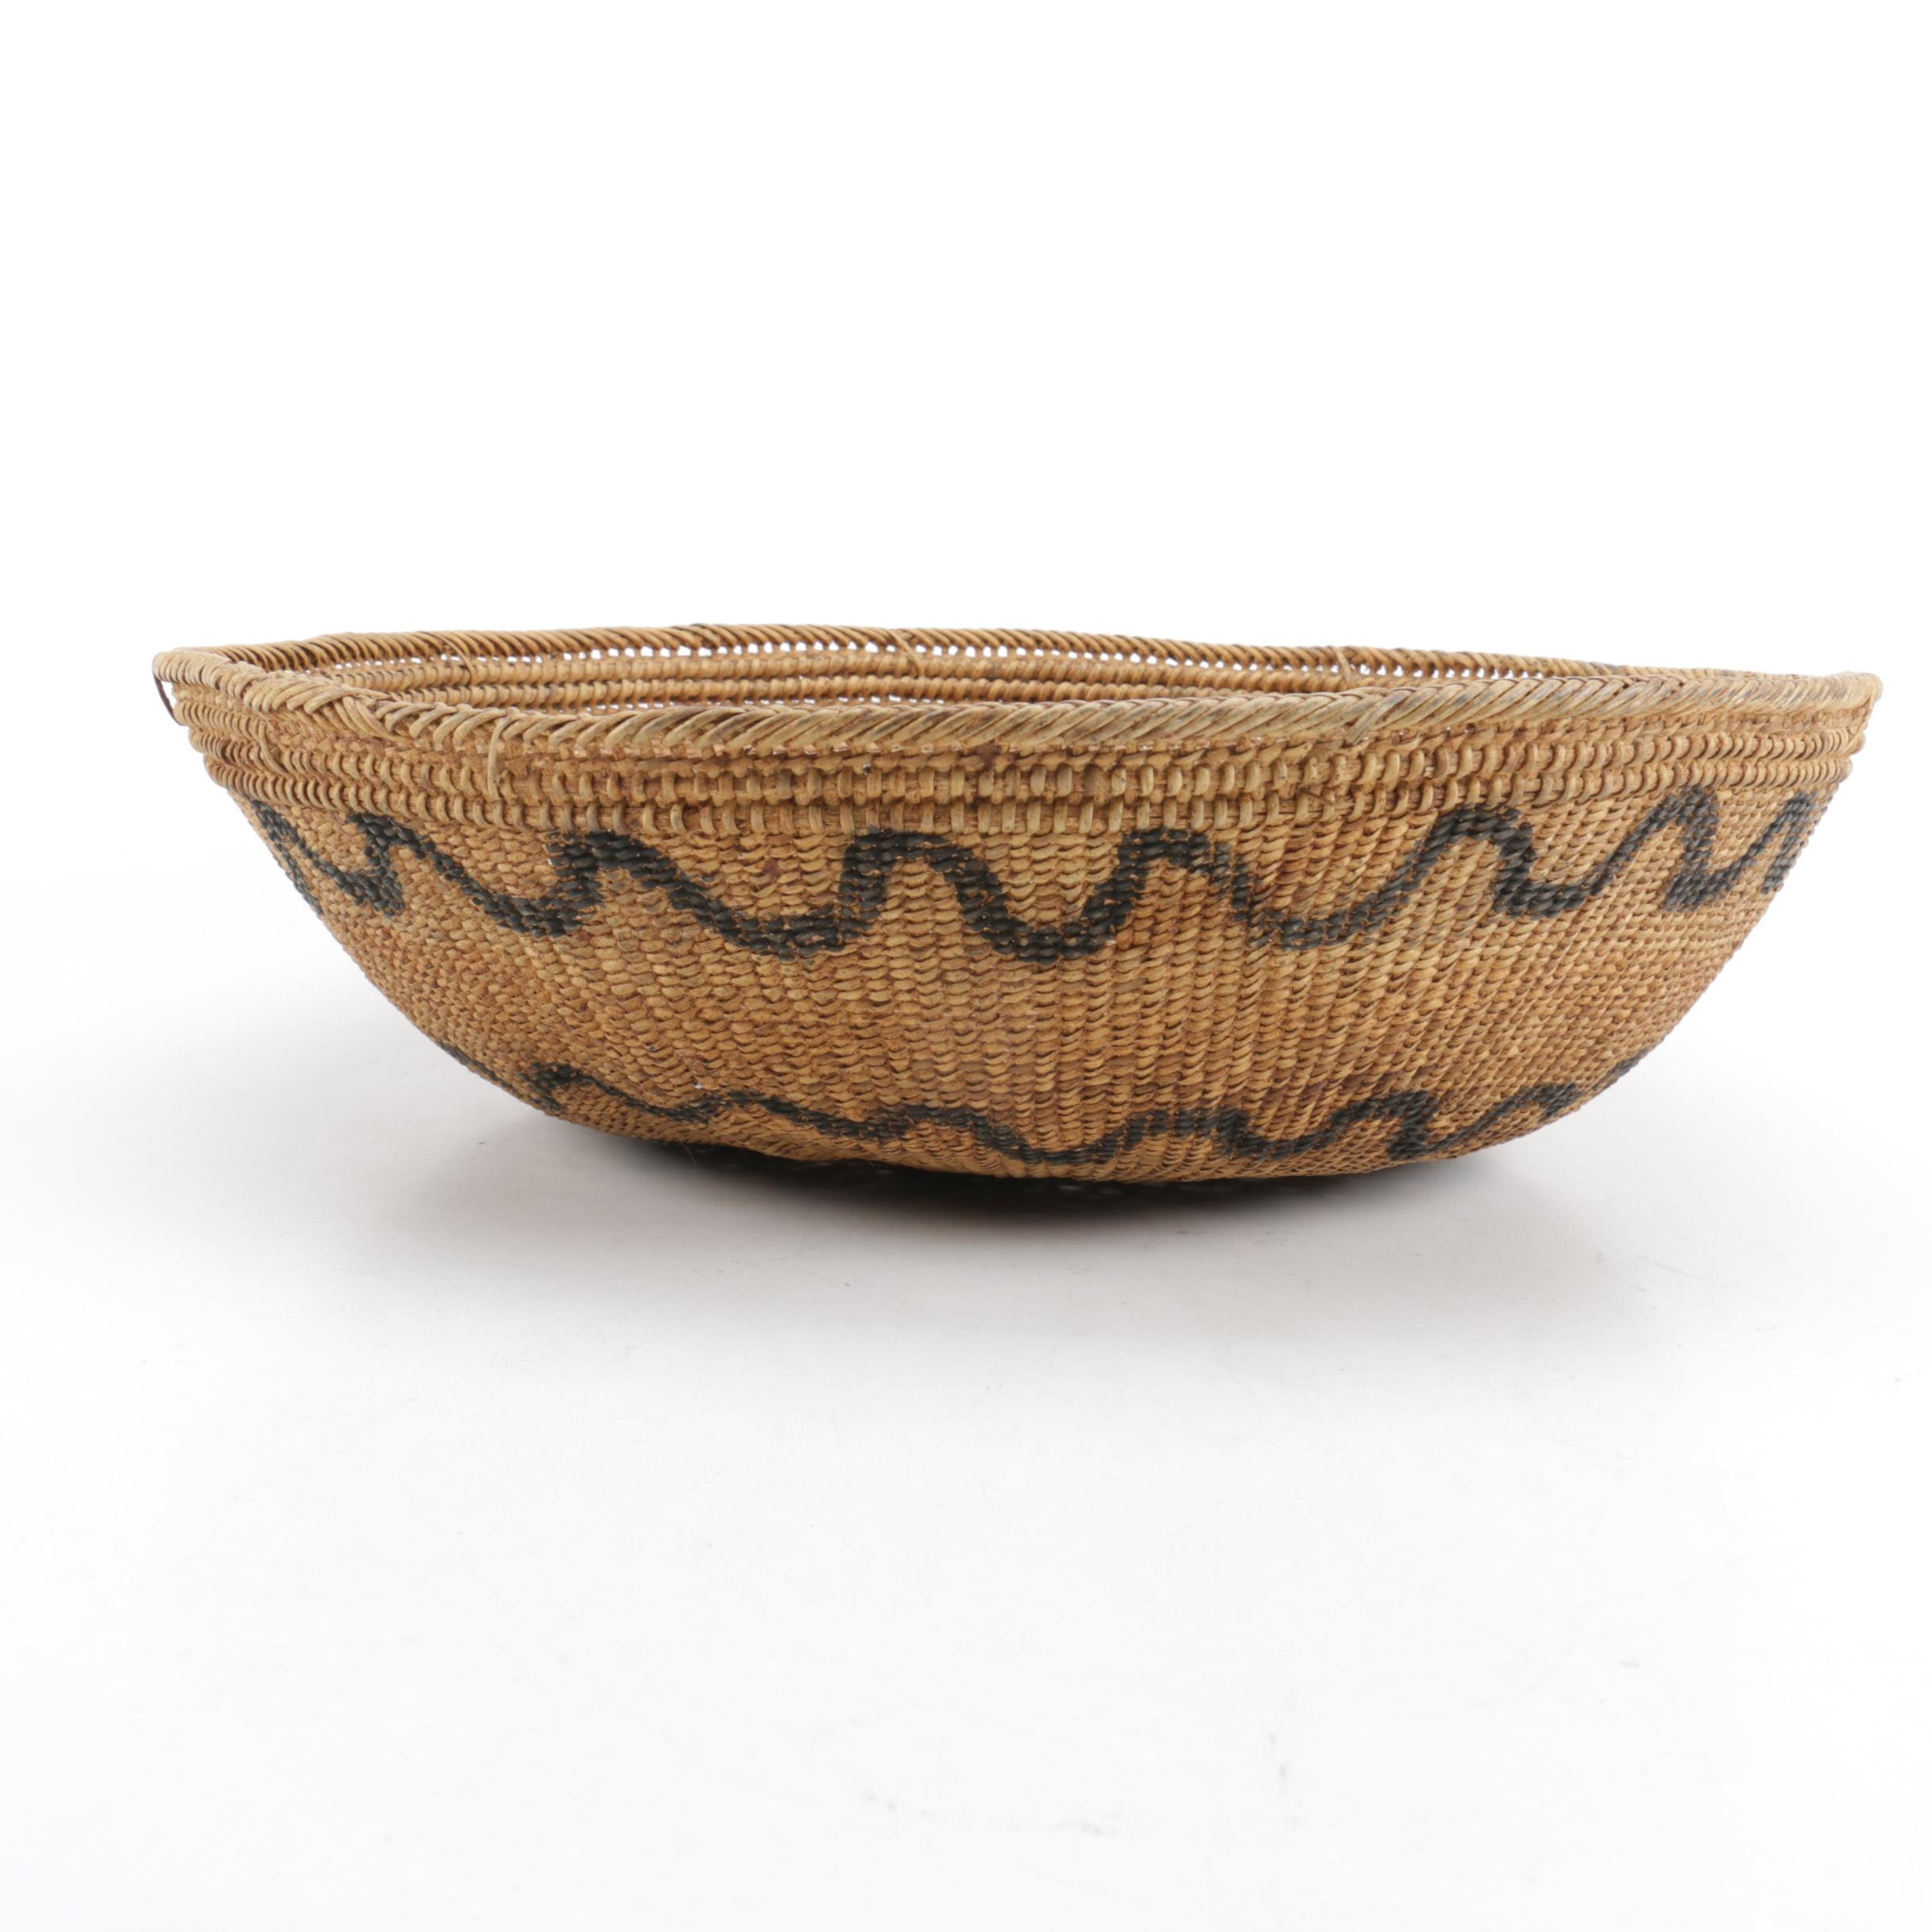 Coiled Basketry Bowl